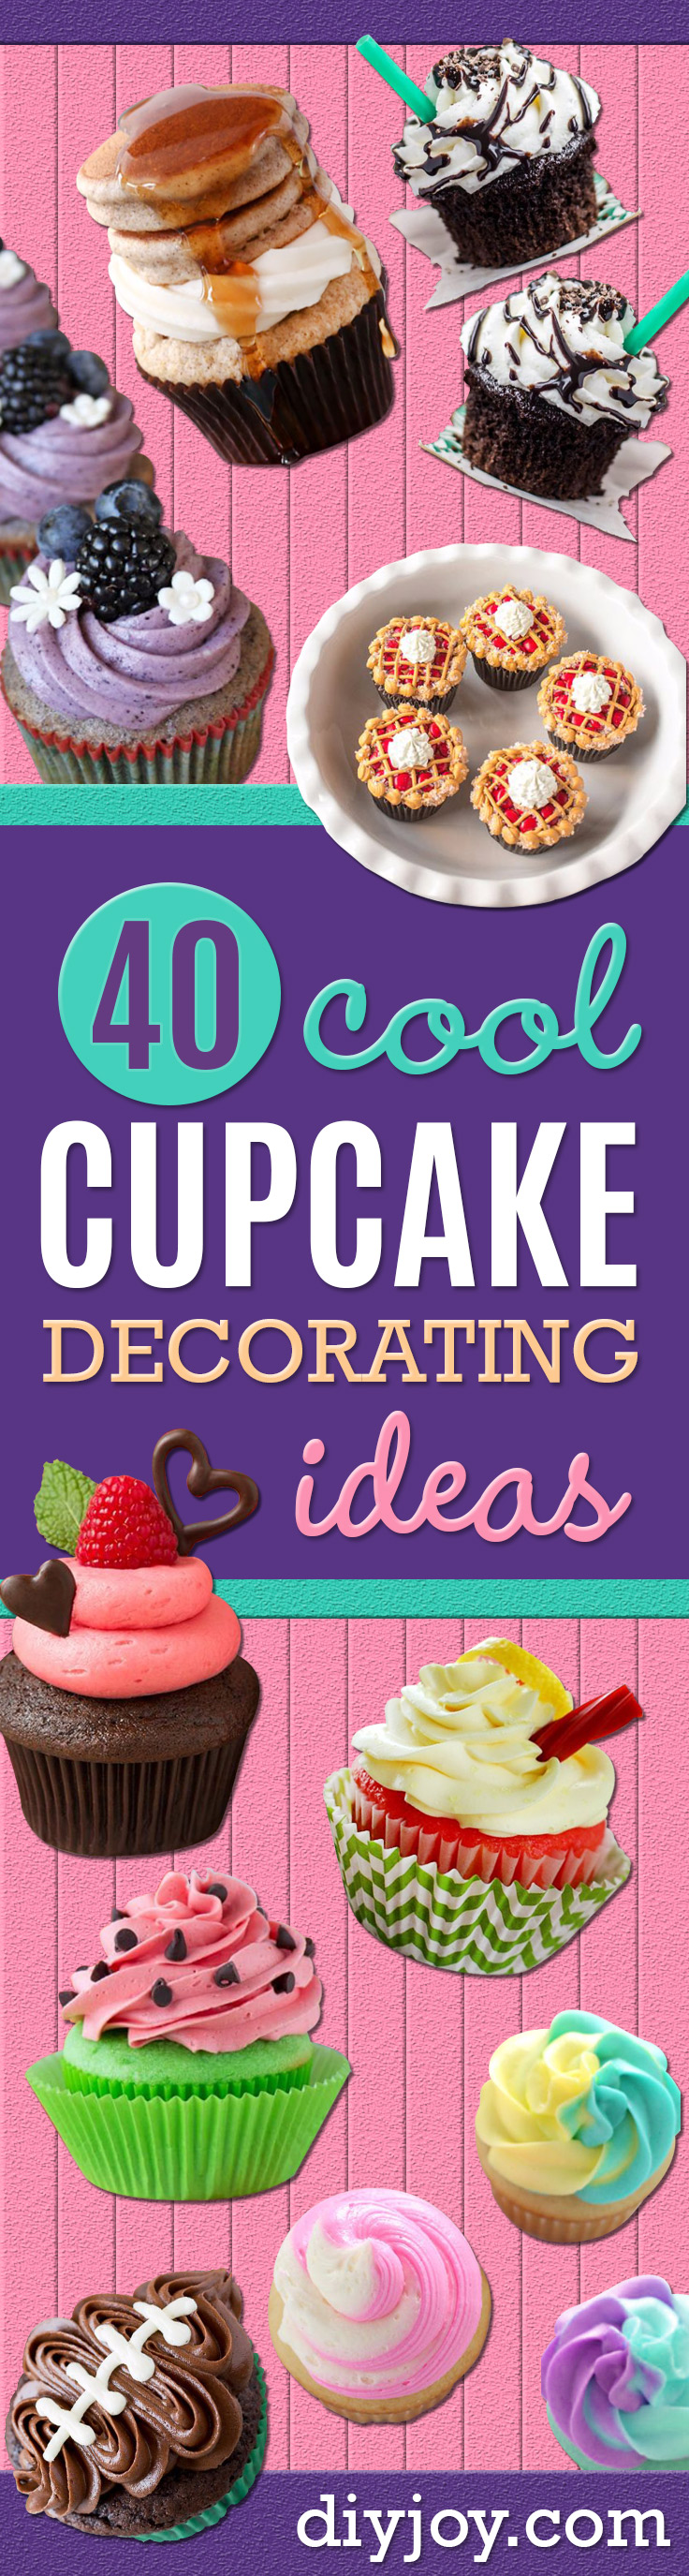 Cool Cupcake Decorating Ideas - Easy Ways To Decorate Cute, Adorable Cupcakes - Quick Recipes and Simple Decorating Tips With Icing, Candy, Chocolate, Buttercream Frosting and Fruit - Best Party and Birthday Party Ideas for Kids and Adults http://diyjoy.com/cupcake-decorating-ideas